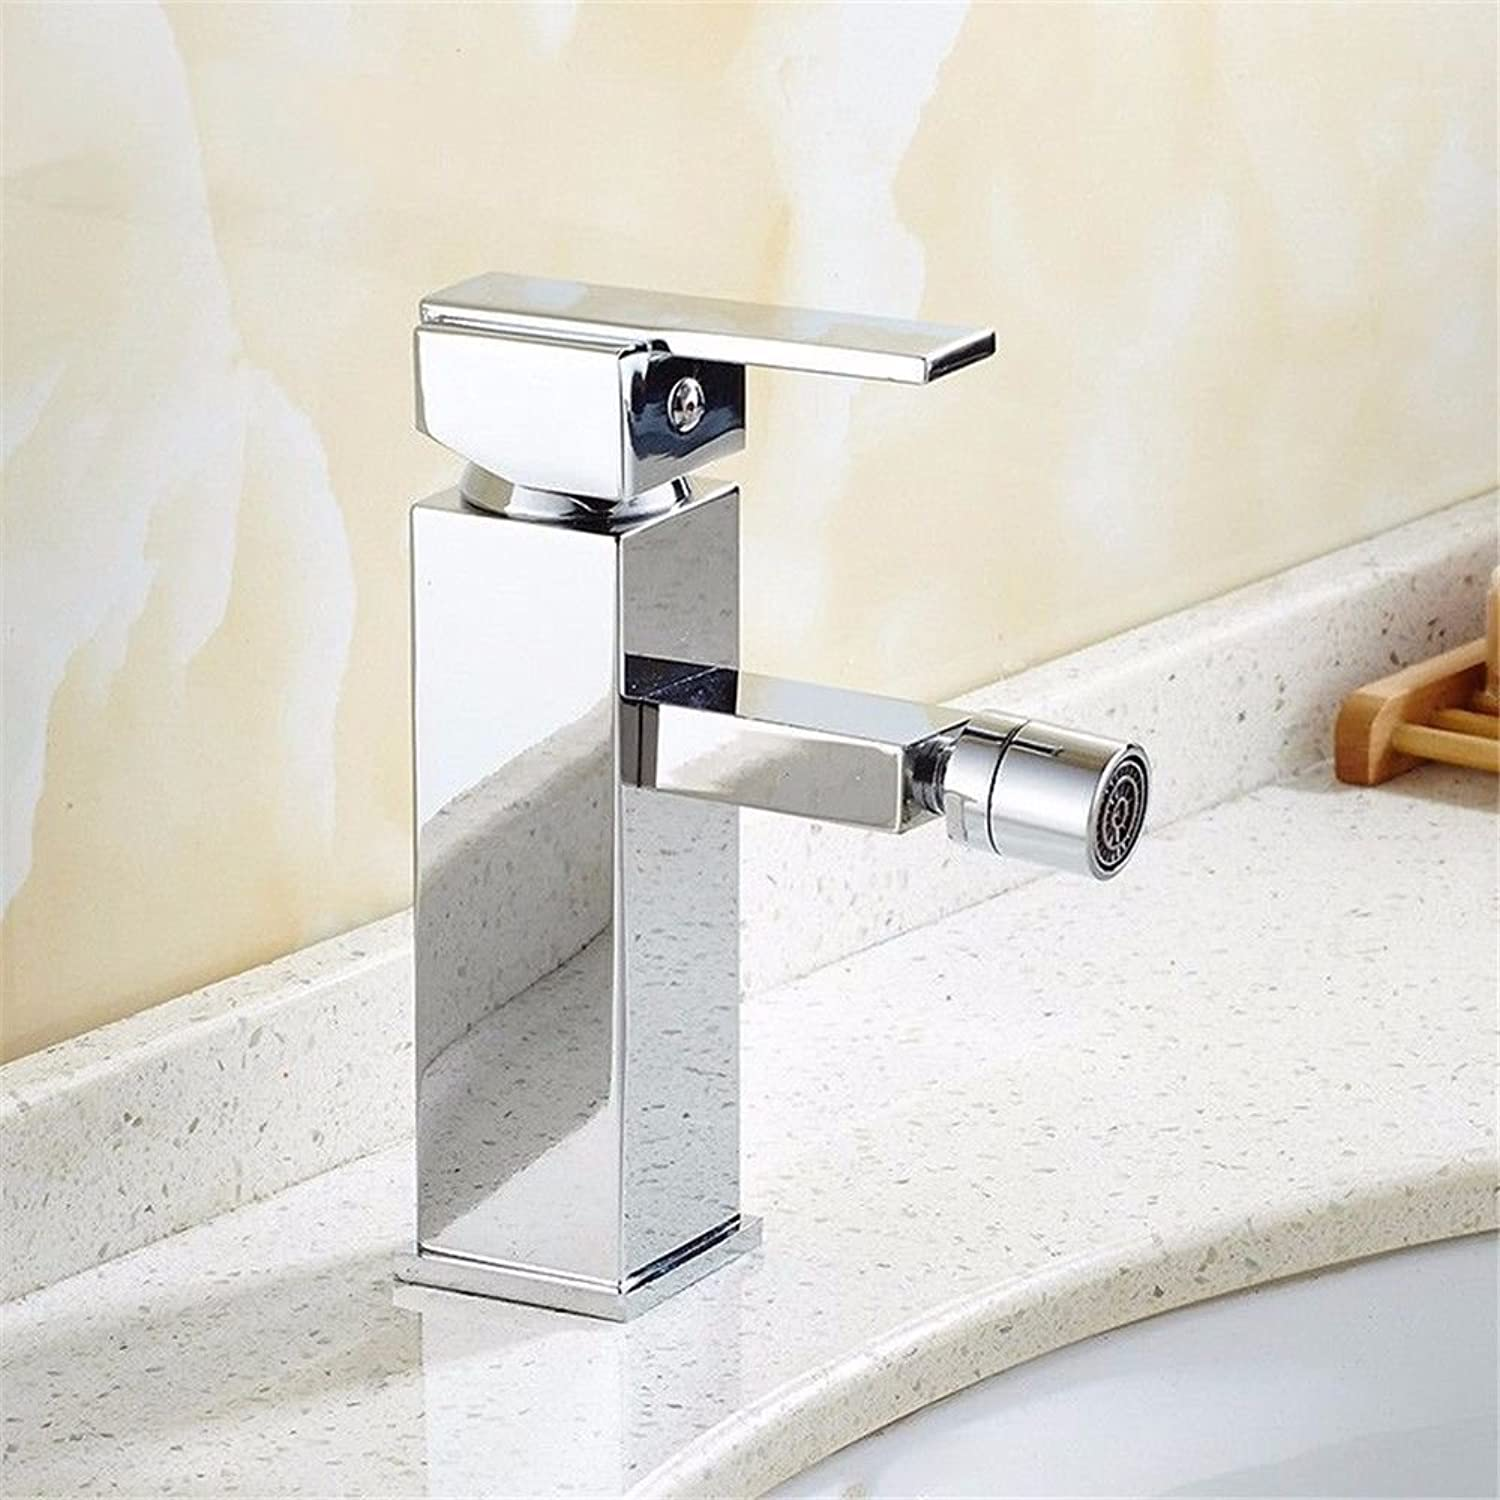 NewBorn Faucet Water Taps Hot And Cold Water Chrome Plated Silver Wash Bathroom Maternal Wash, Single Hole Water Tap